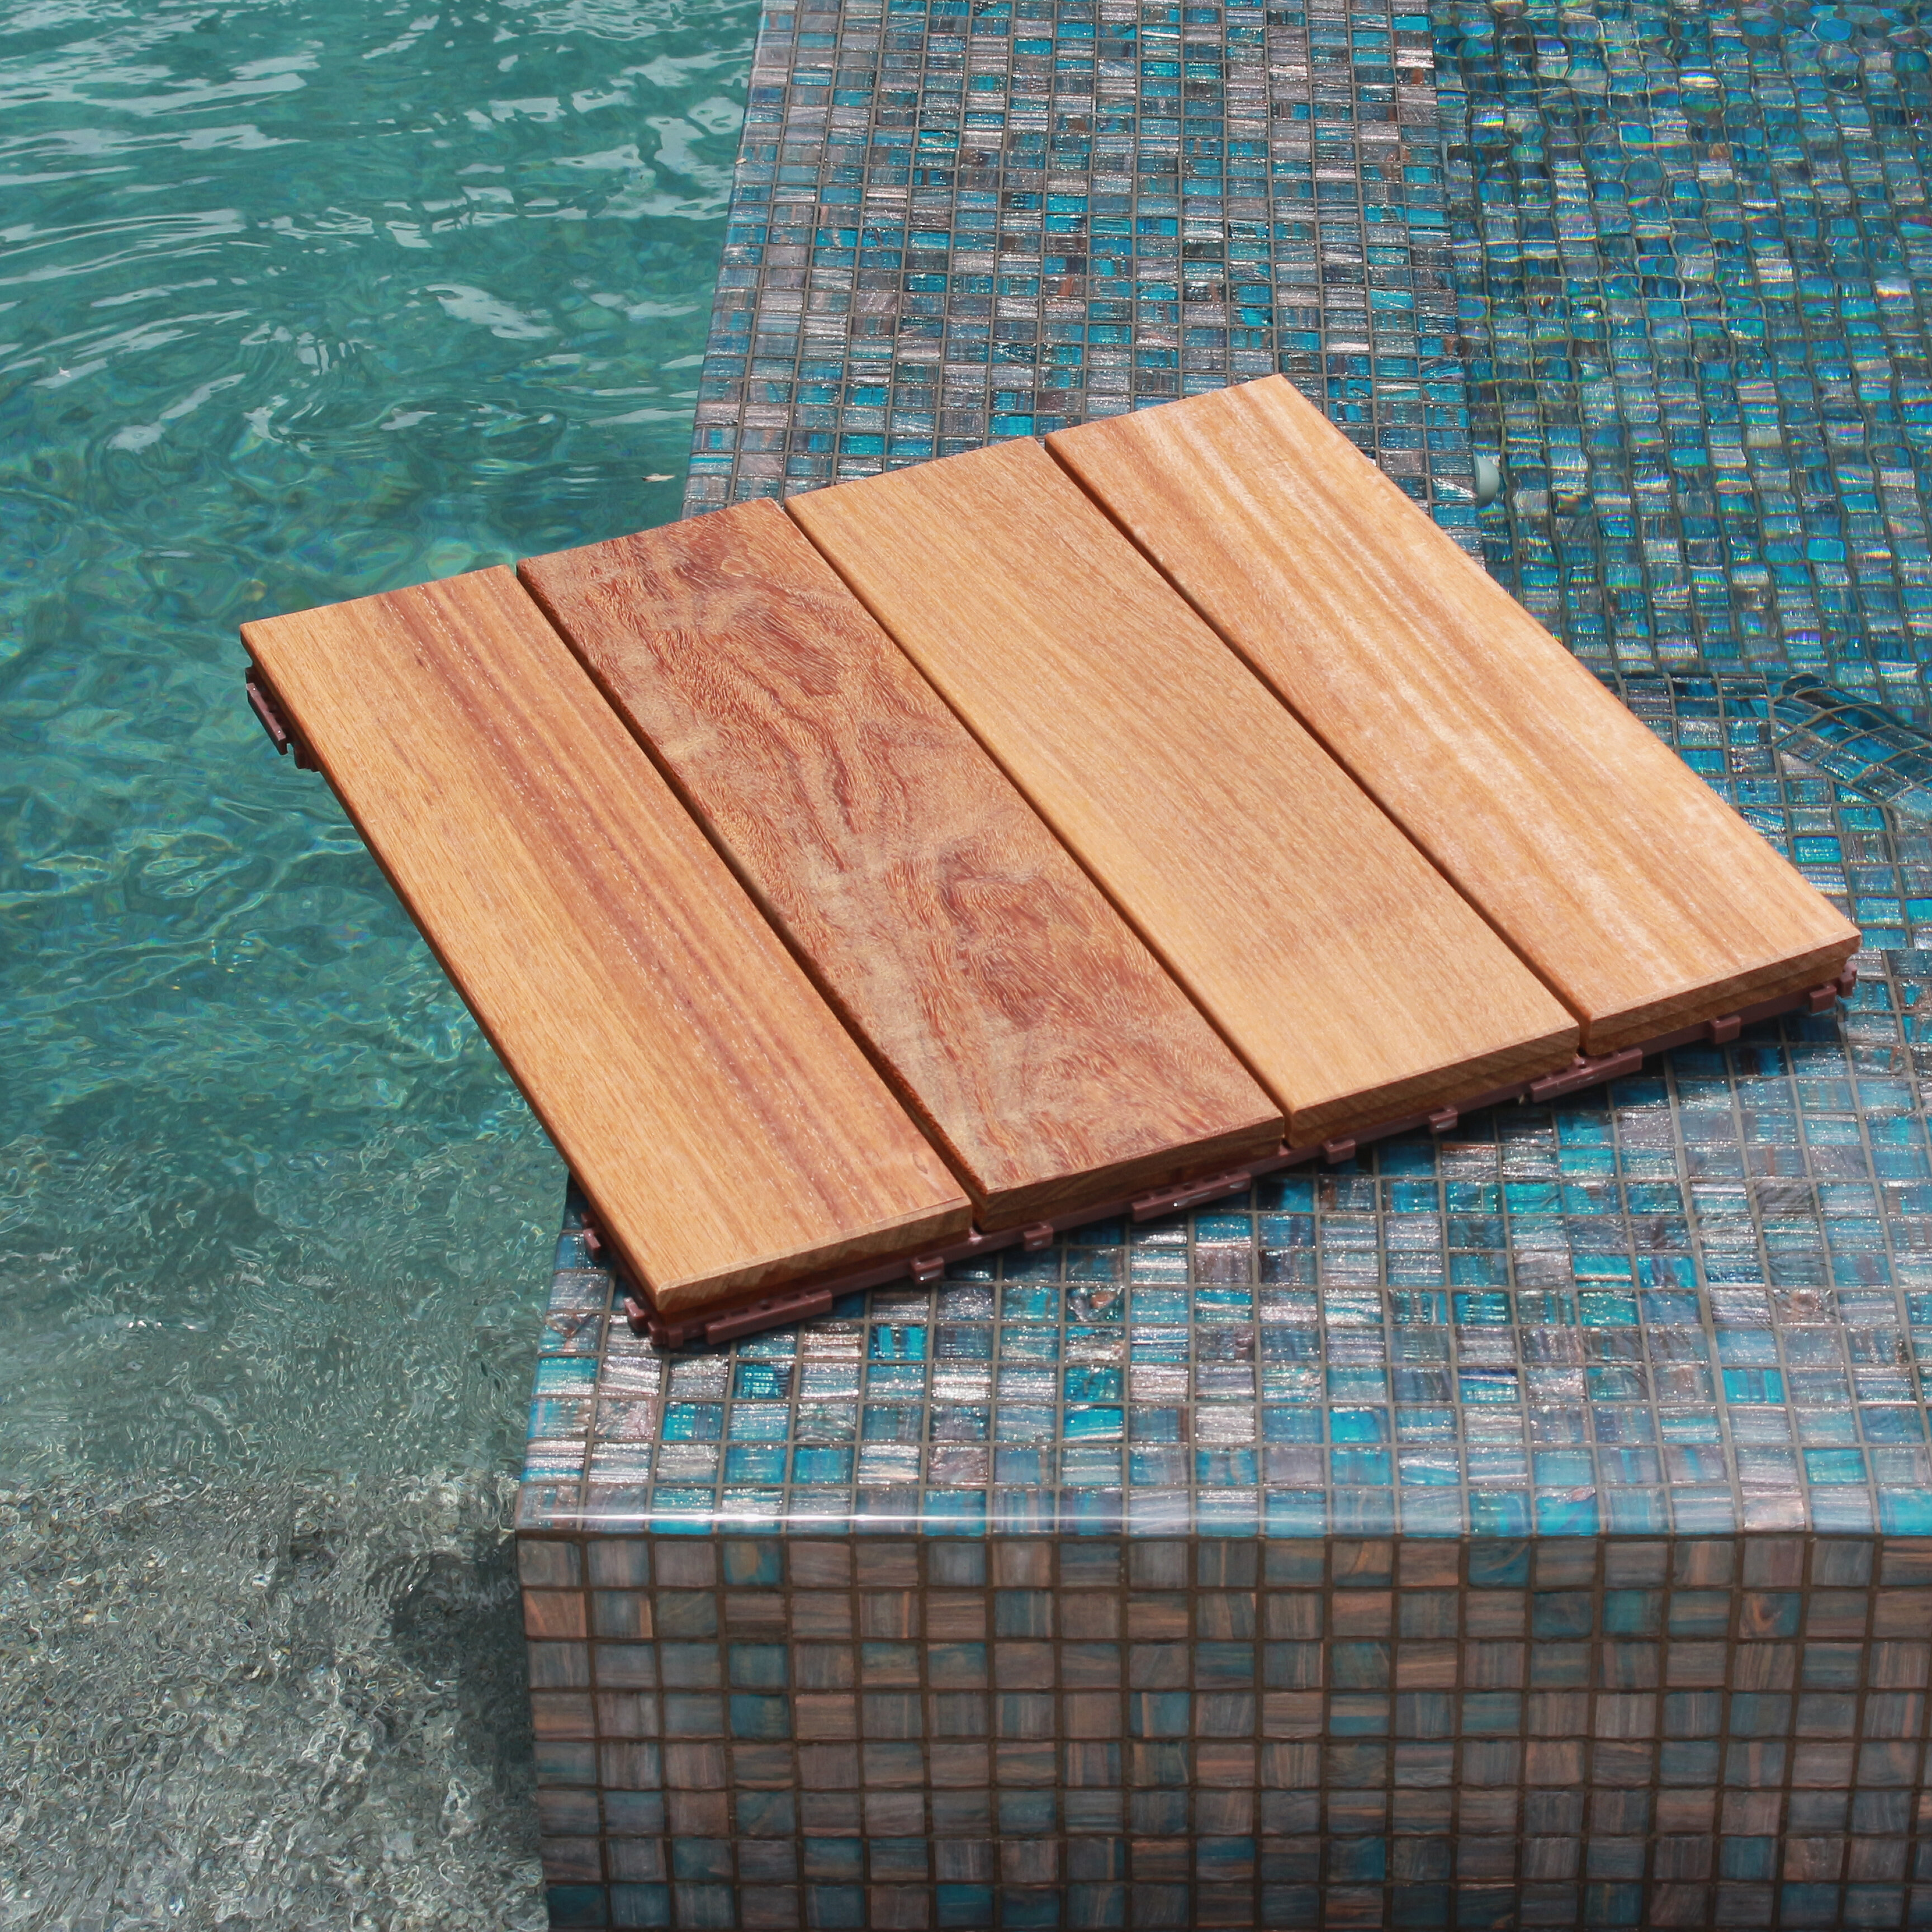 Flexdeck hardwood 18 x 18 snap in deck tiles in natural flexdeck hardwood 18 x 18 snap in deck tiles in natural reviews wayfair dailygadgetfo Image collections